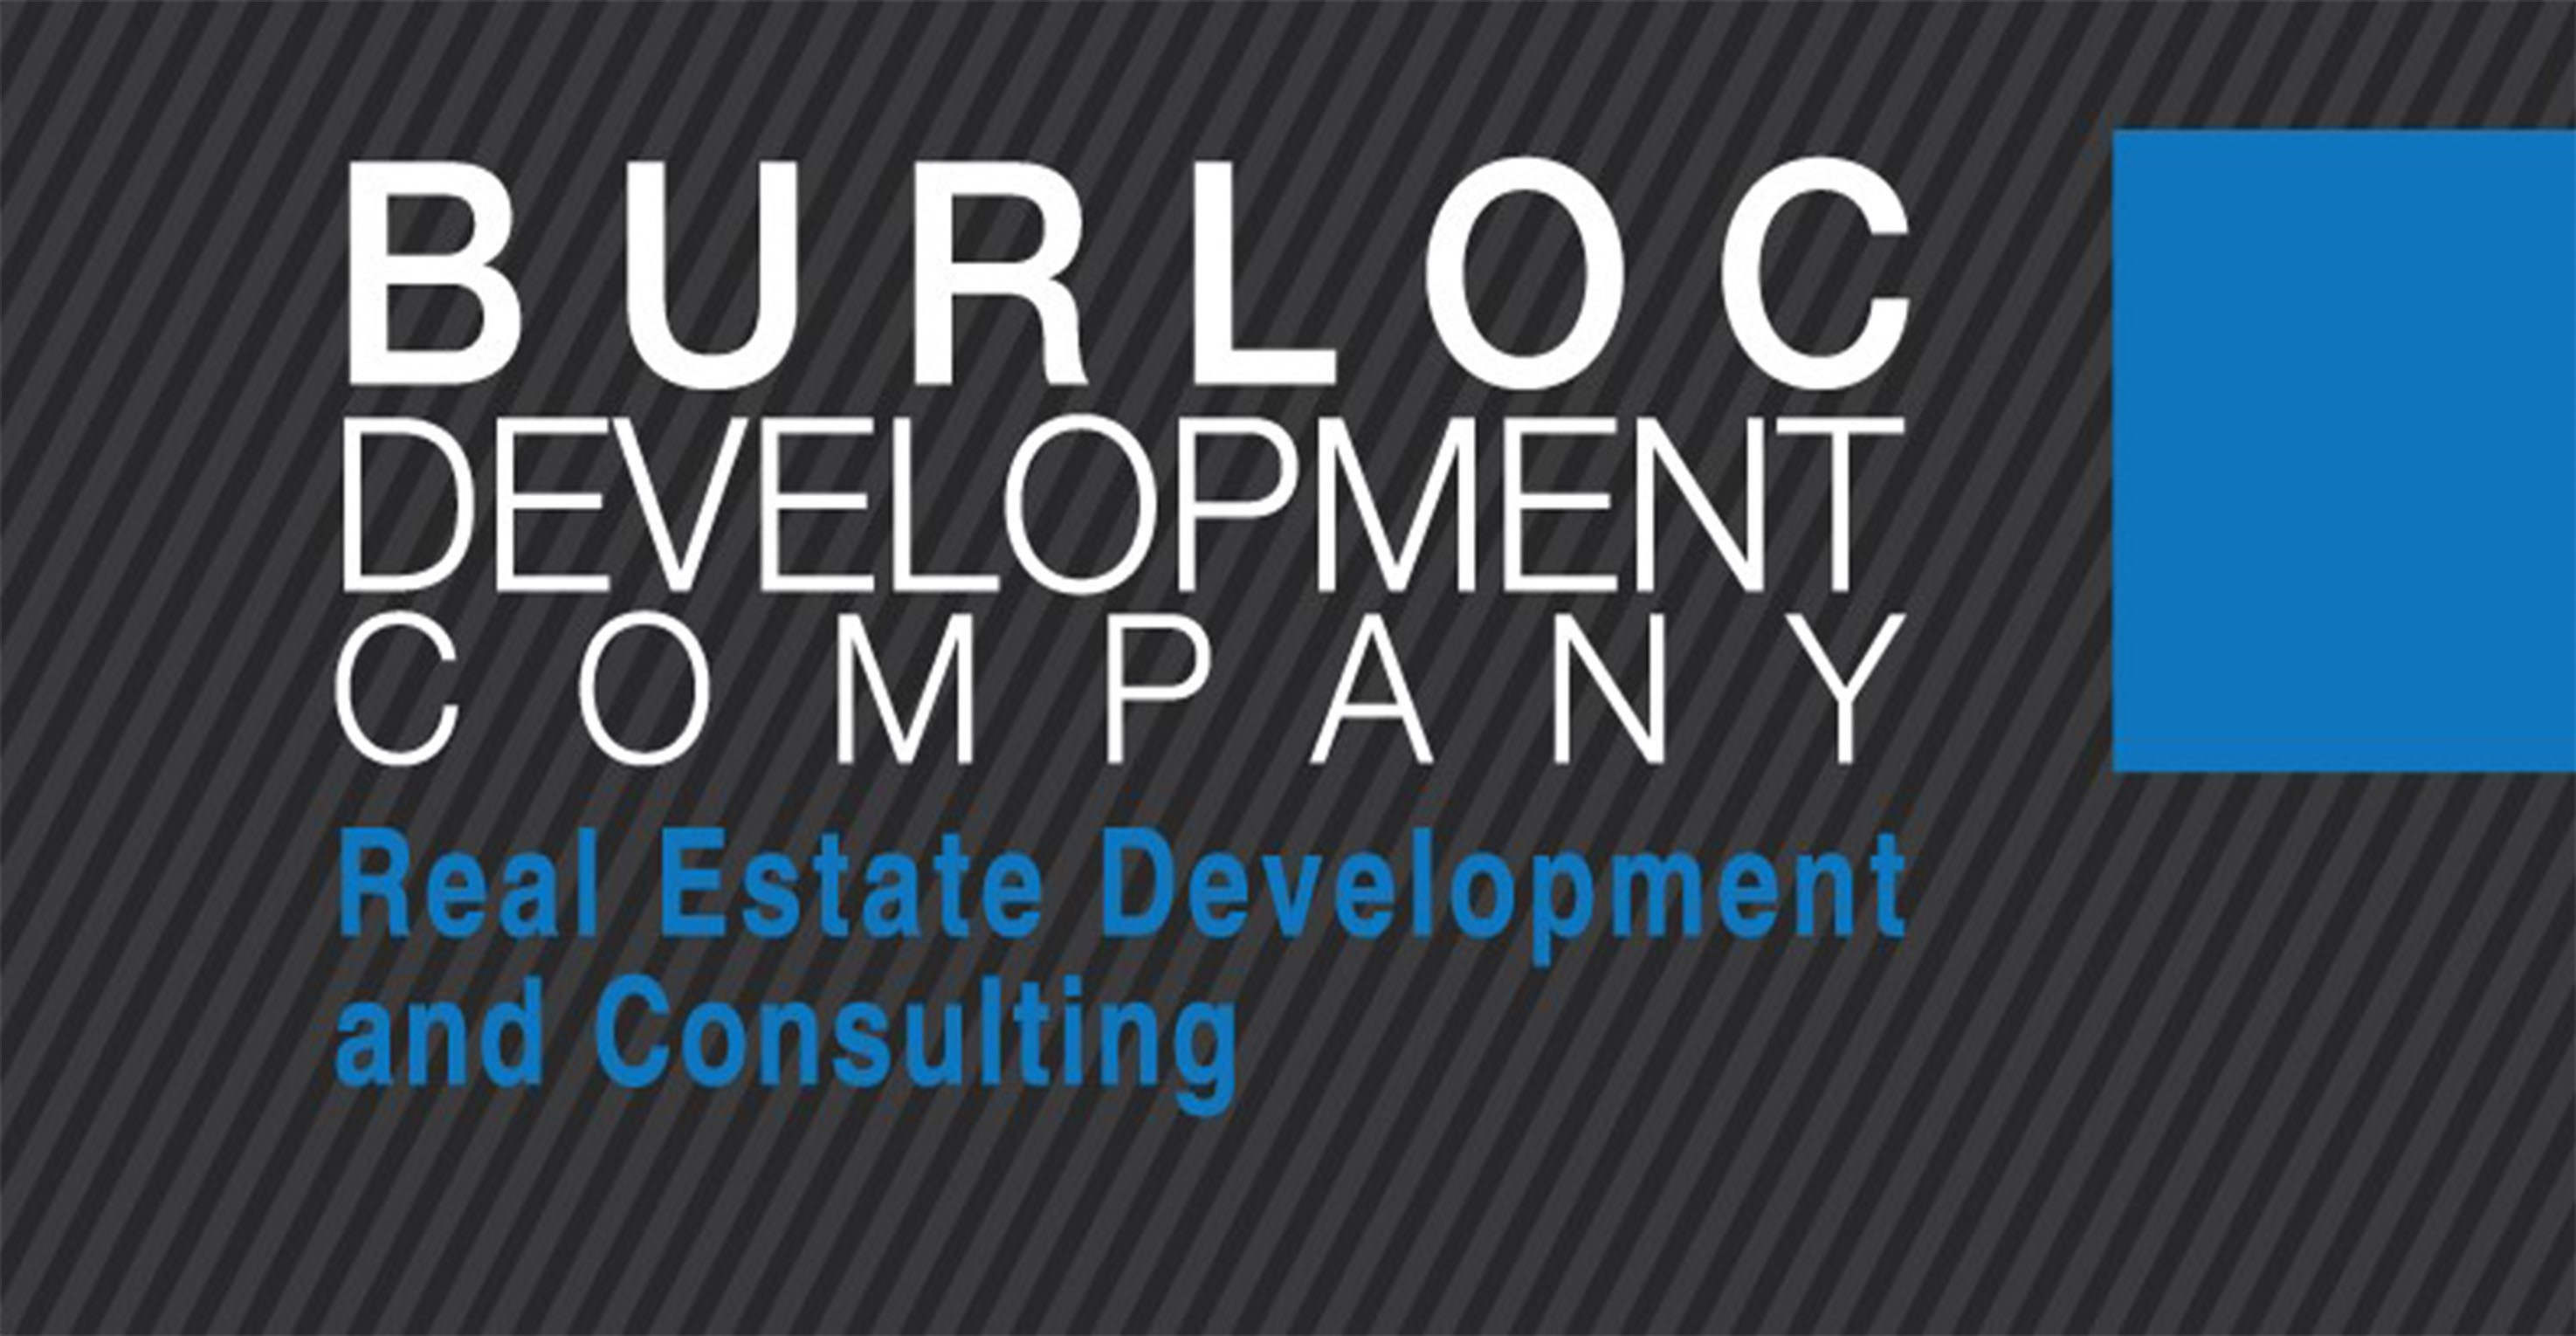 Burloc Development Company